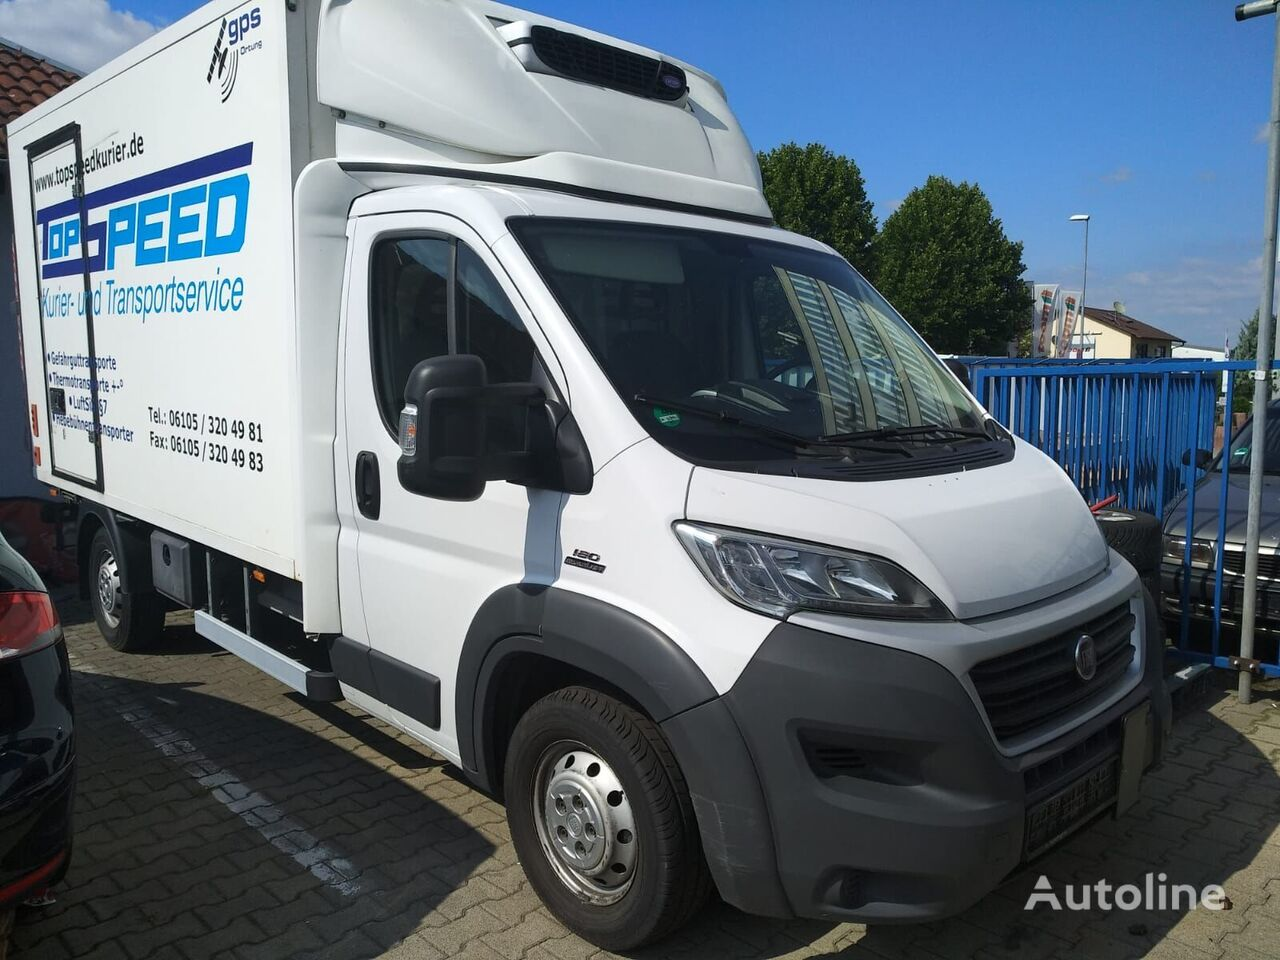 FIAT Ducato 3.0, FULL option, 2015, MAXI Kühlkoffer LKW